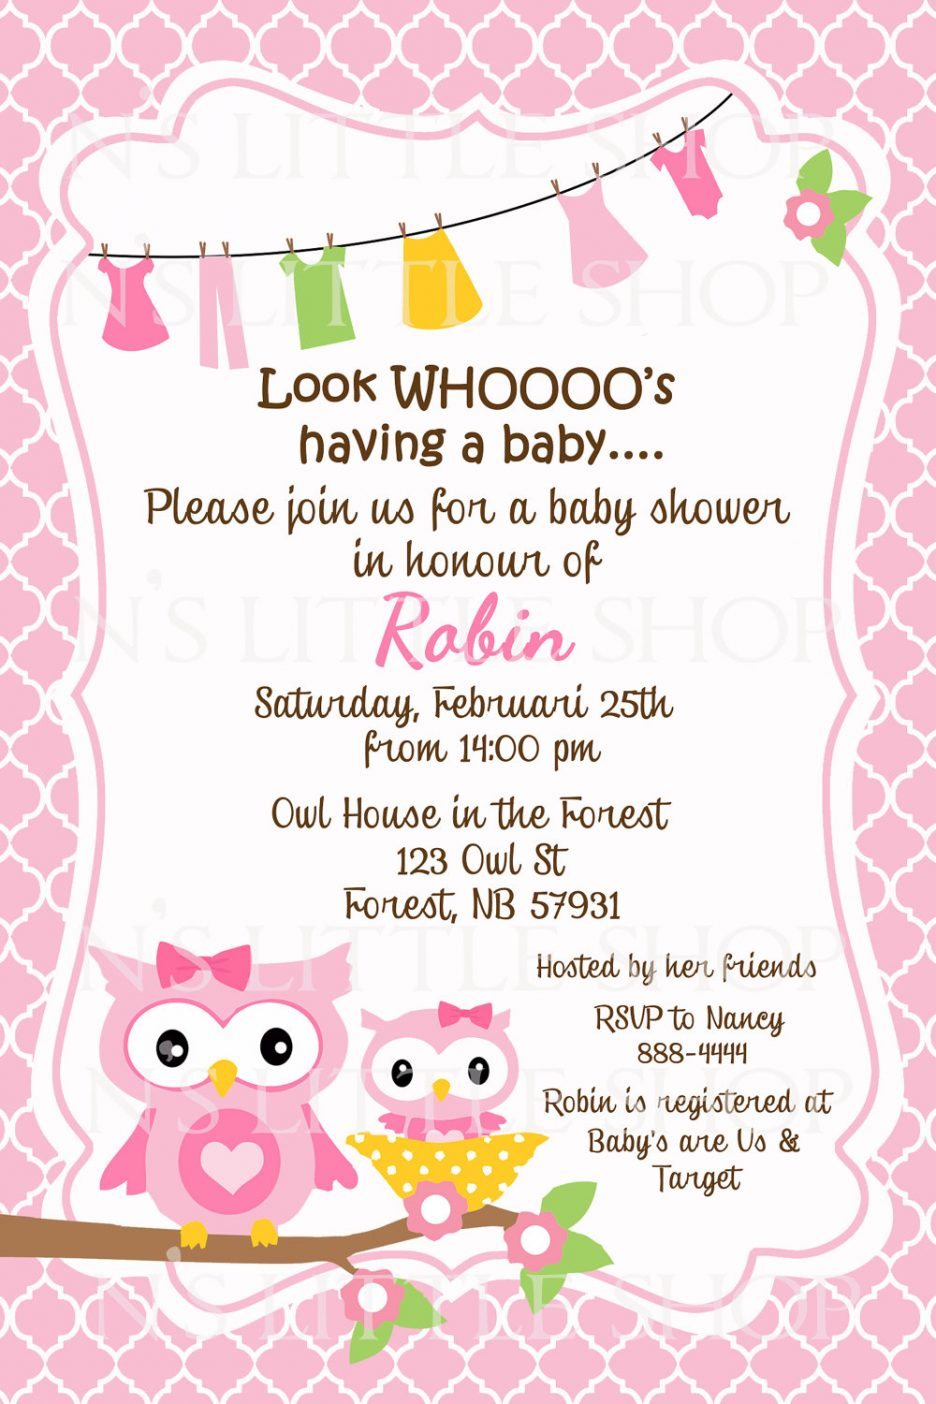 Full Size of Baby Shower:49+ Prime Baby Shower Card Message Photo Concepts Baby Shower Card Message How To Plan A Baby Shower Printable Baby Shower Cards Baby Shower De Niño Baby Shower Photos Baby Shower Verses Sample Beautiful Pink Owls Baby Shower Invitation Card For Baby